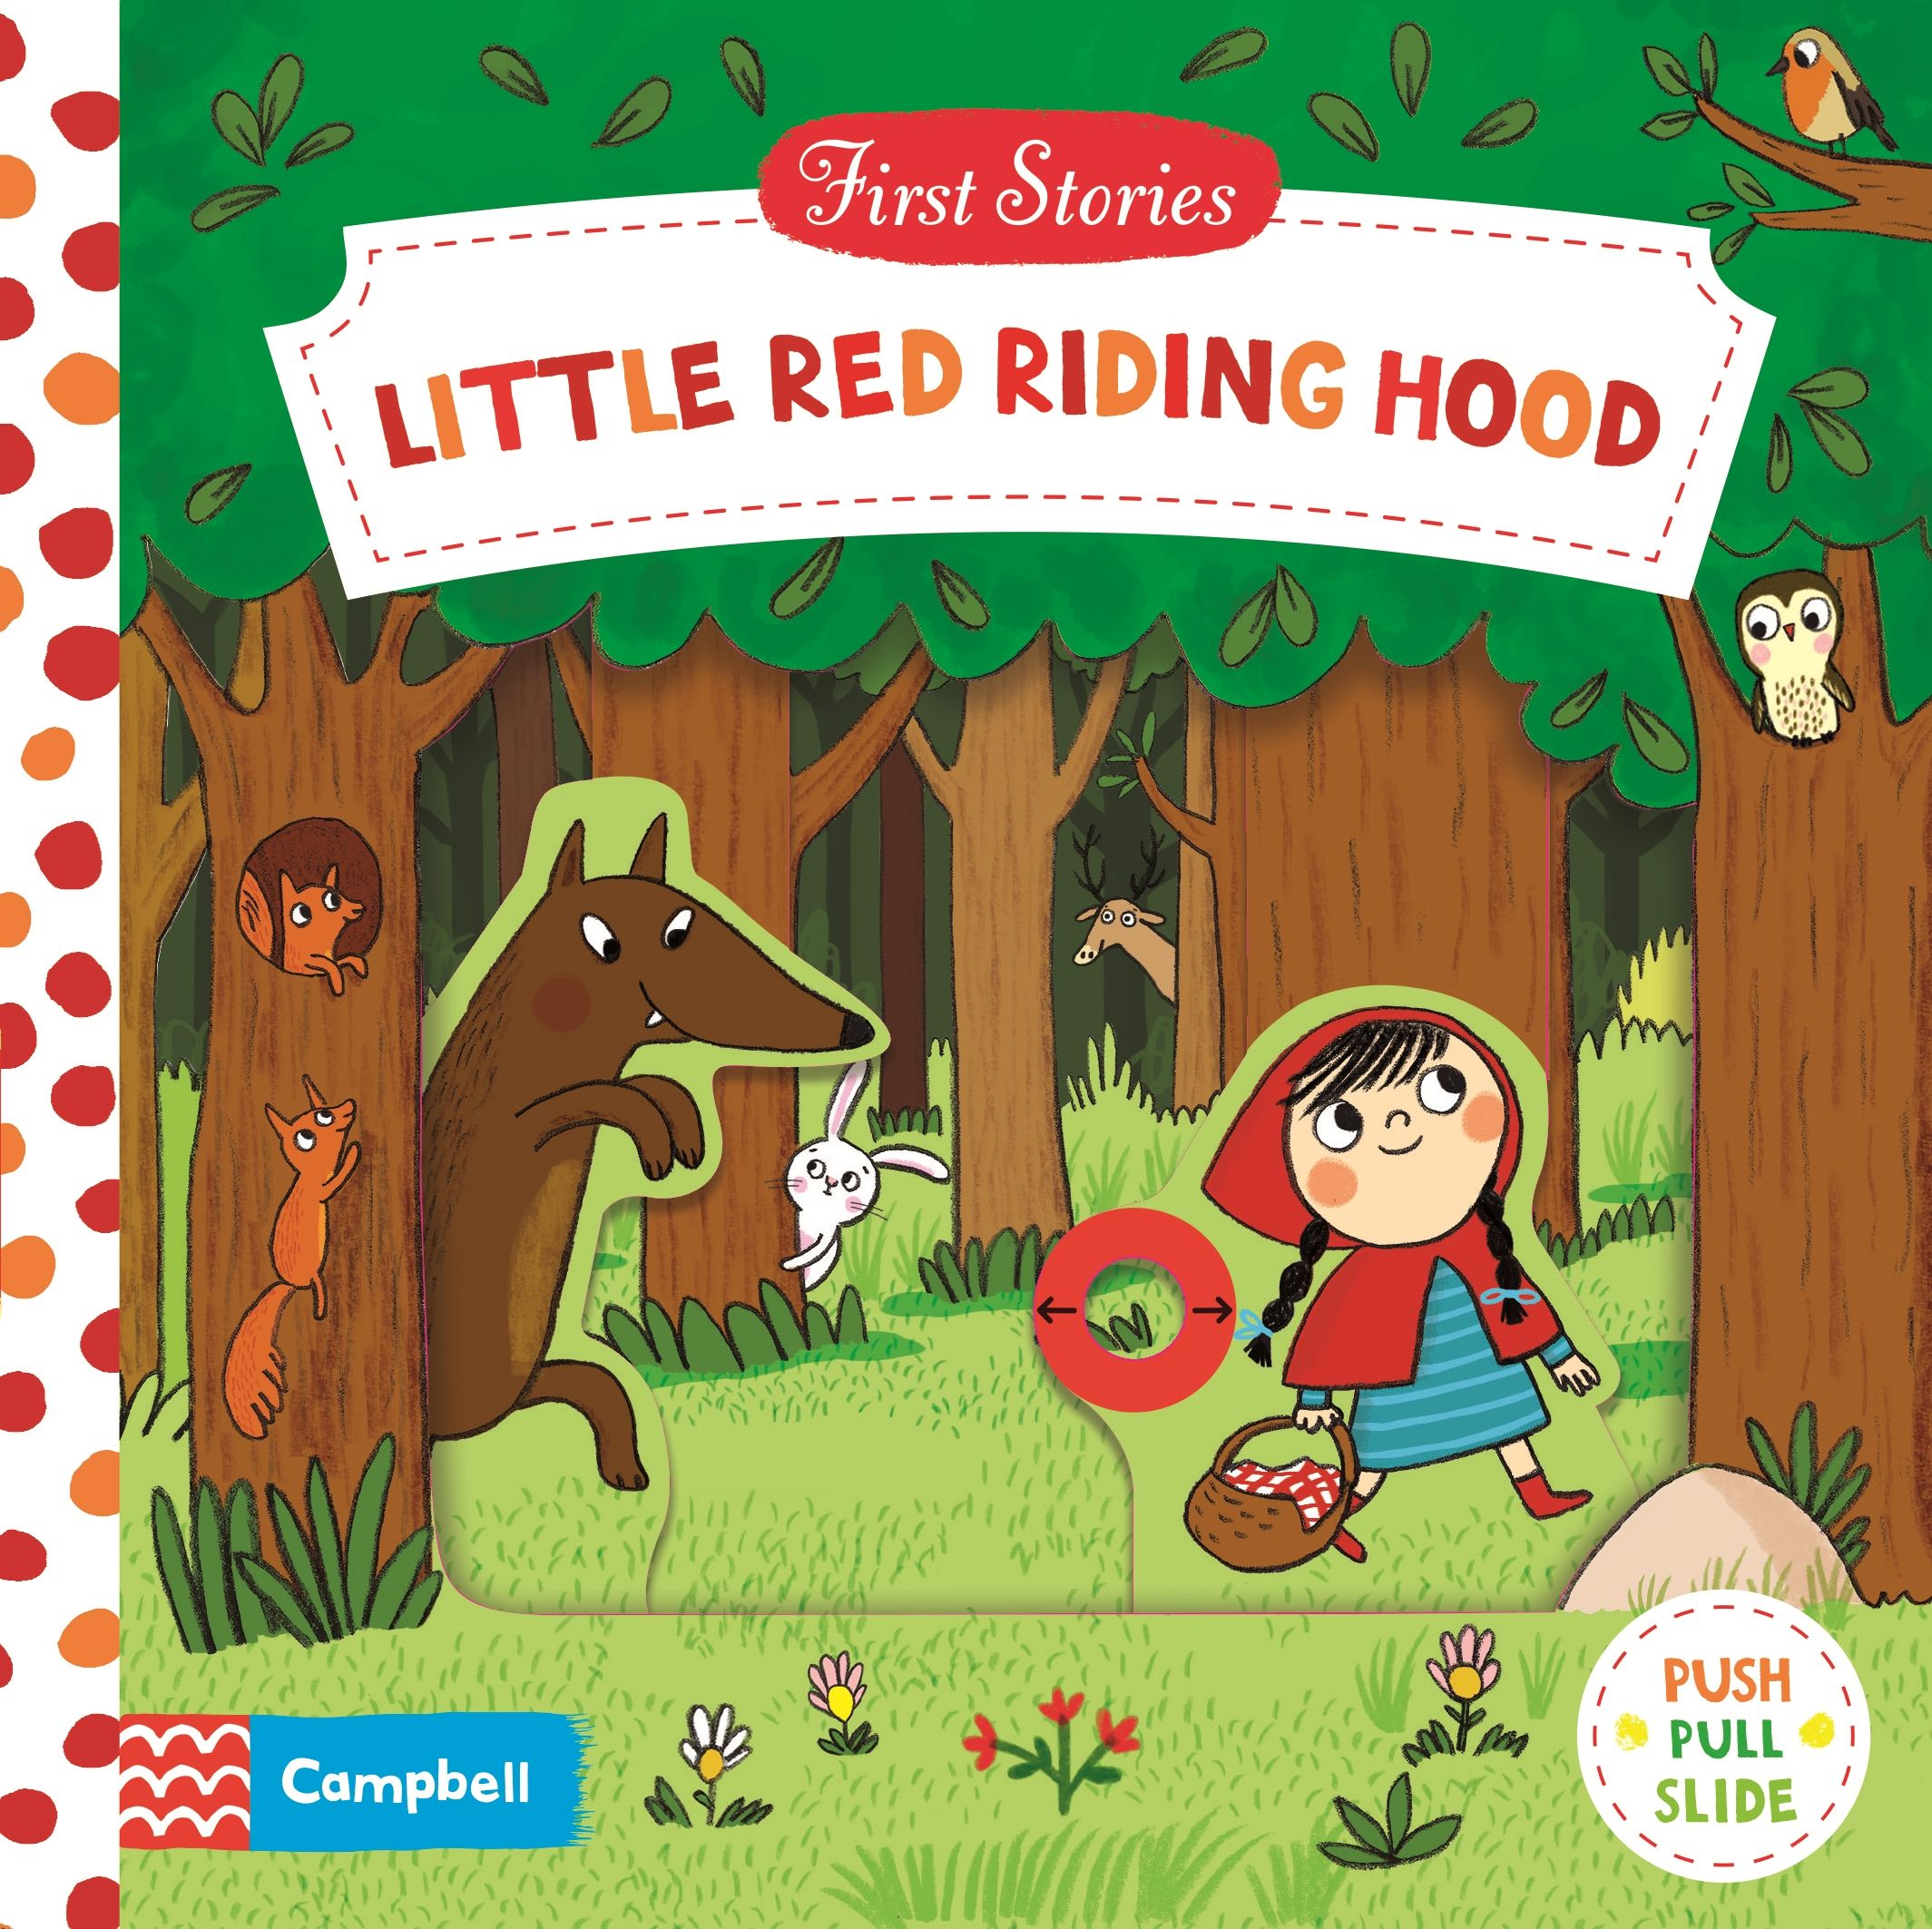 First stories little red riding hood is the perfect